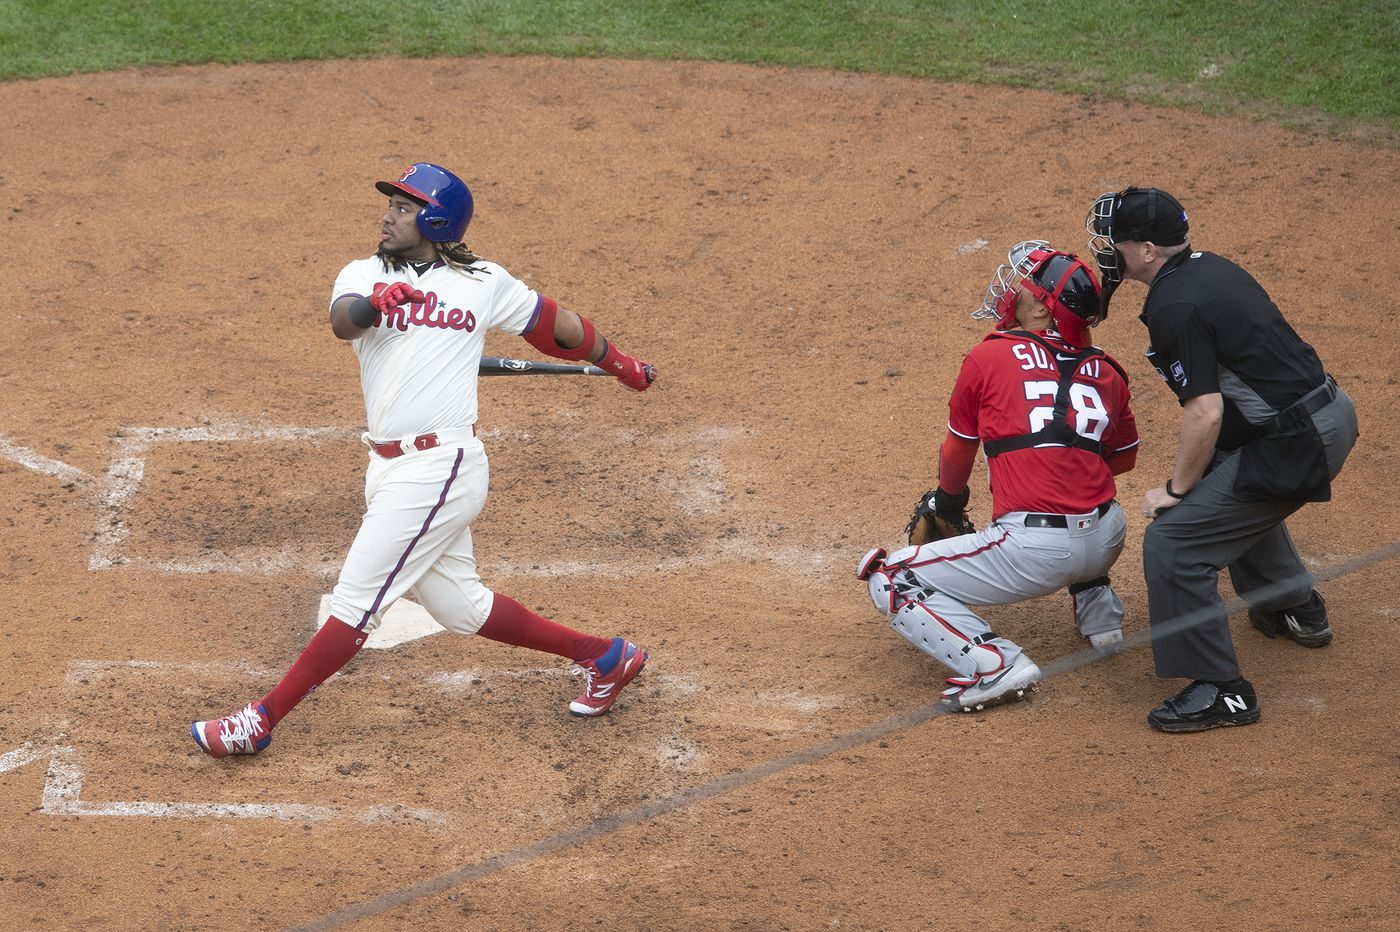 How Phillies players have made practical use of analytics to improve their games